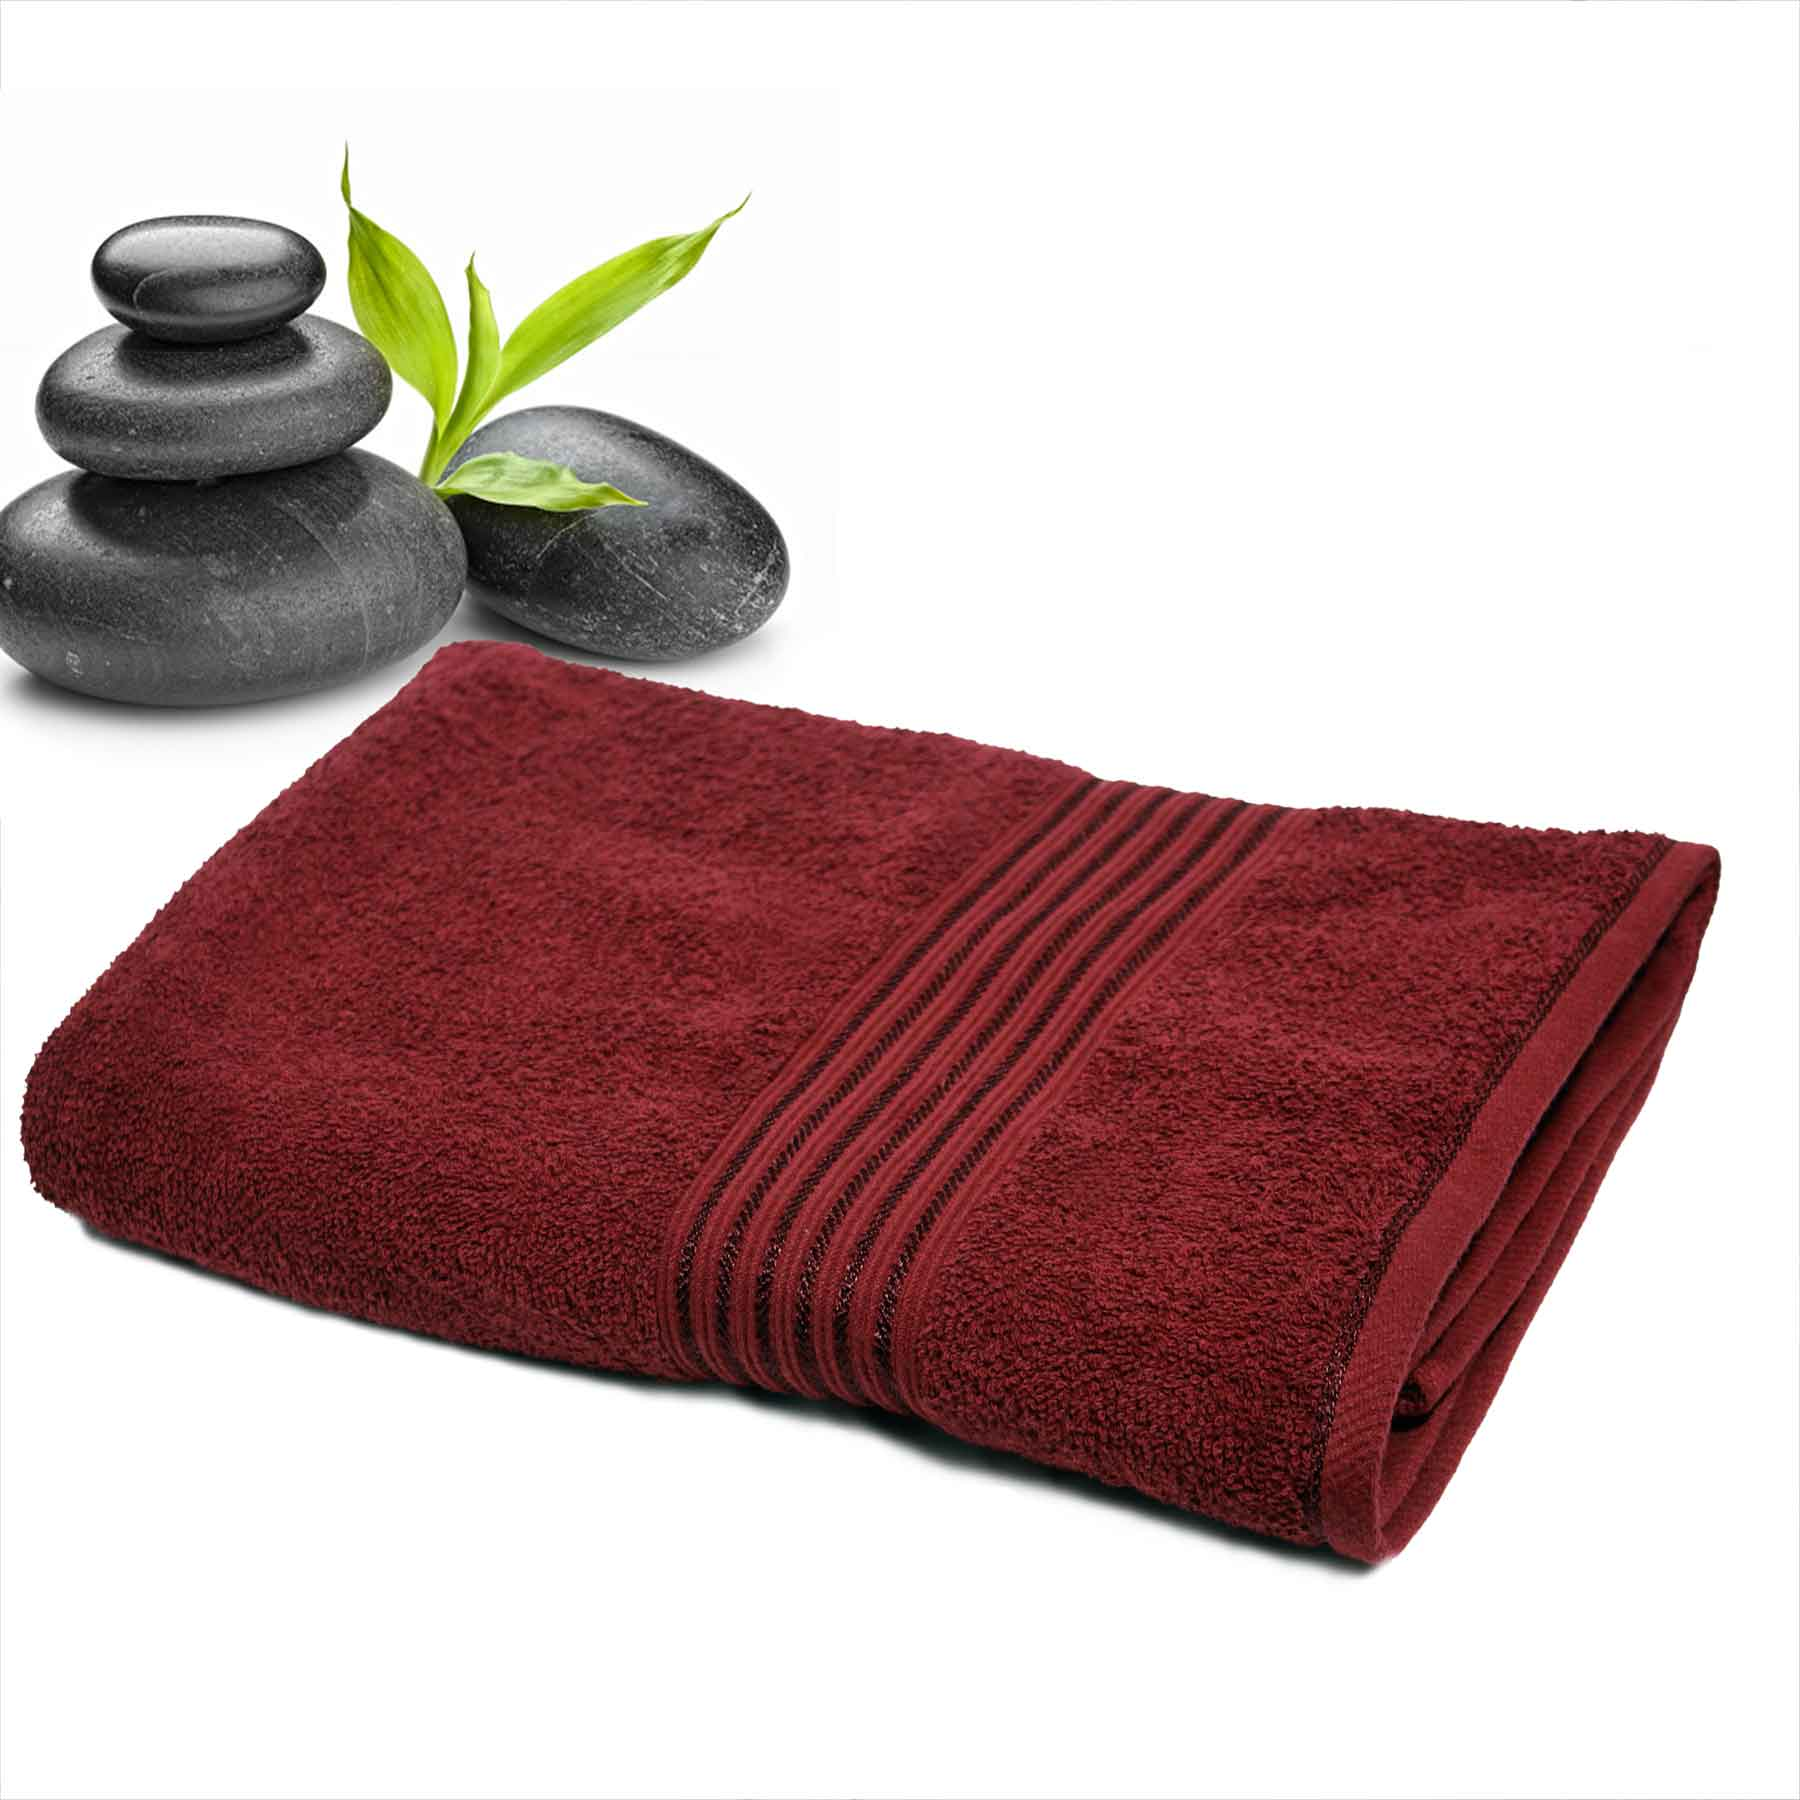 DIVINE CASA Single Cotton Bath Towel Maroon (Ladies)